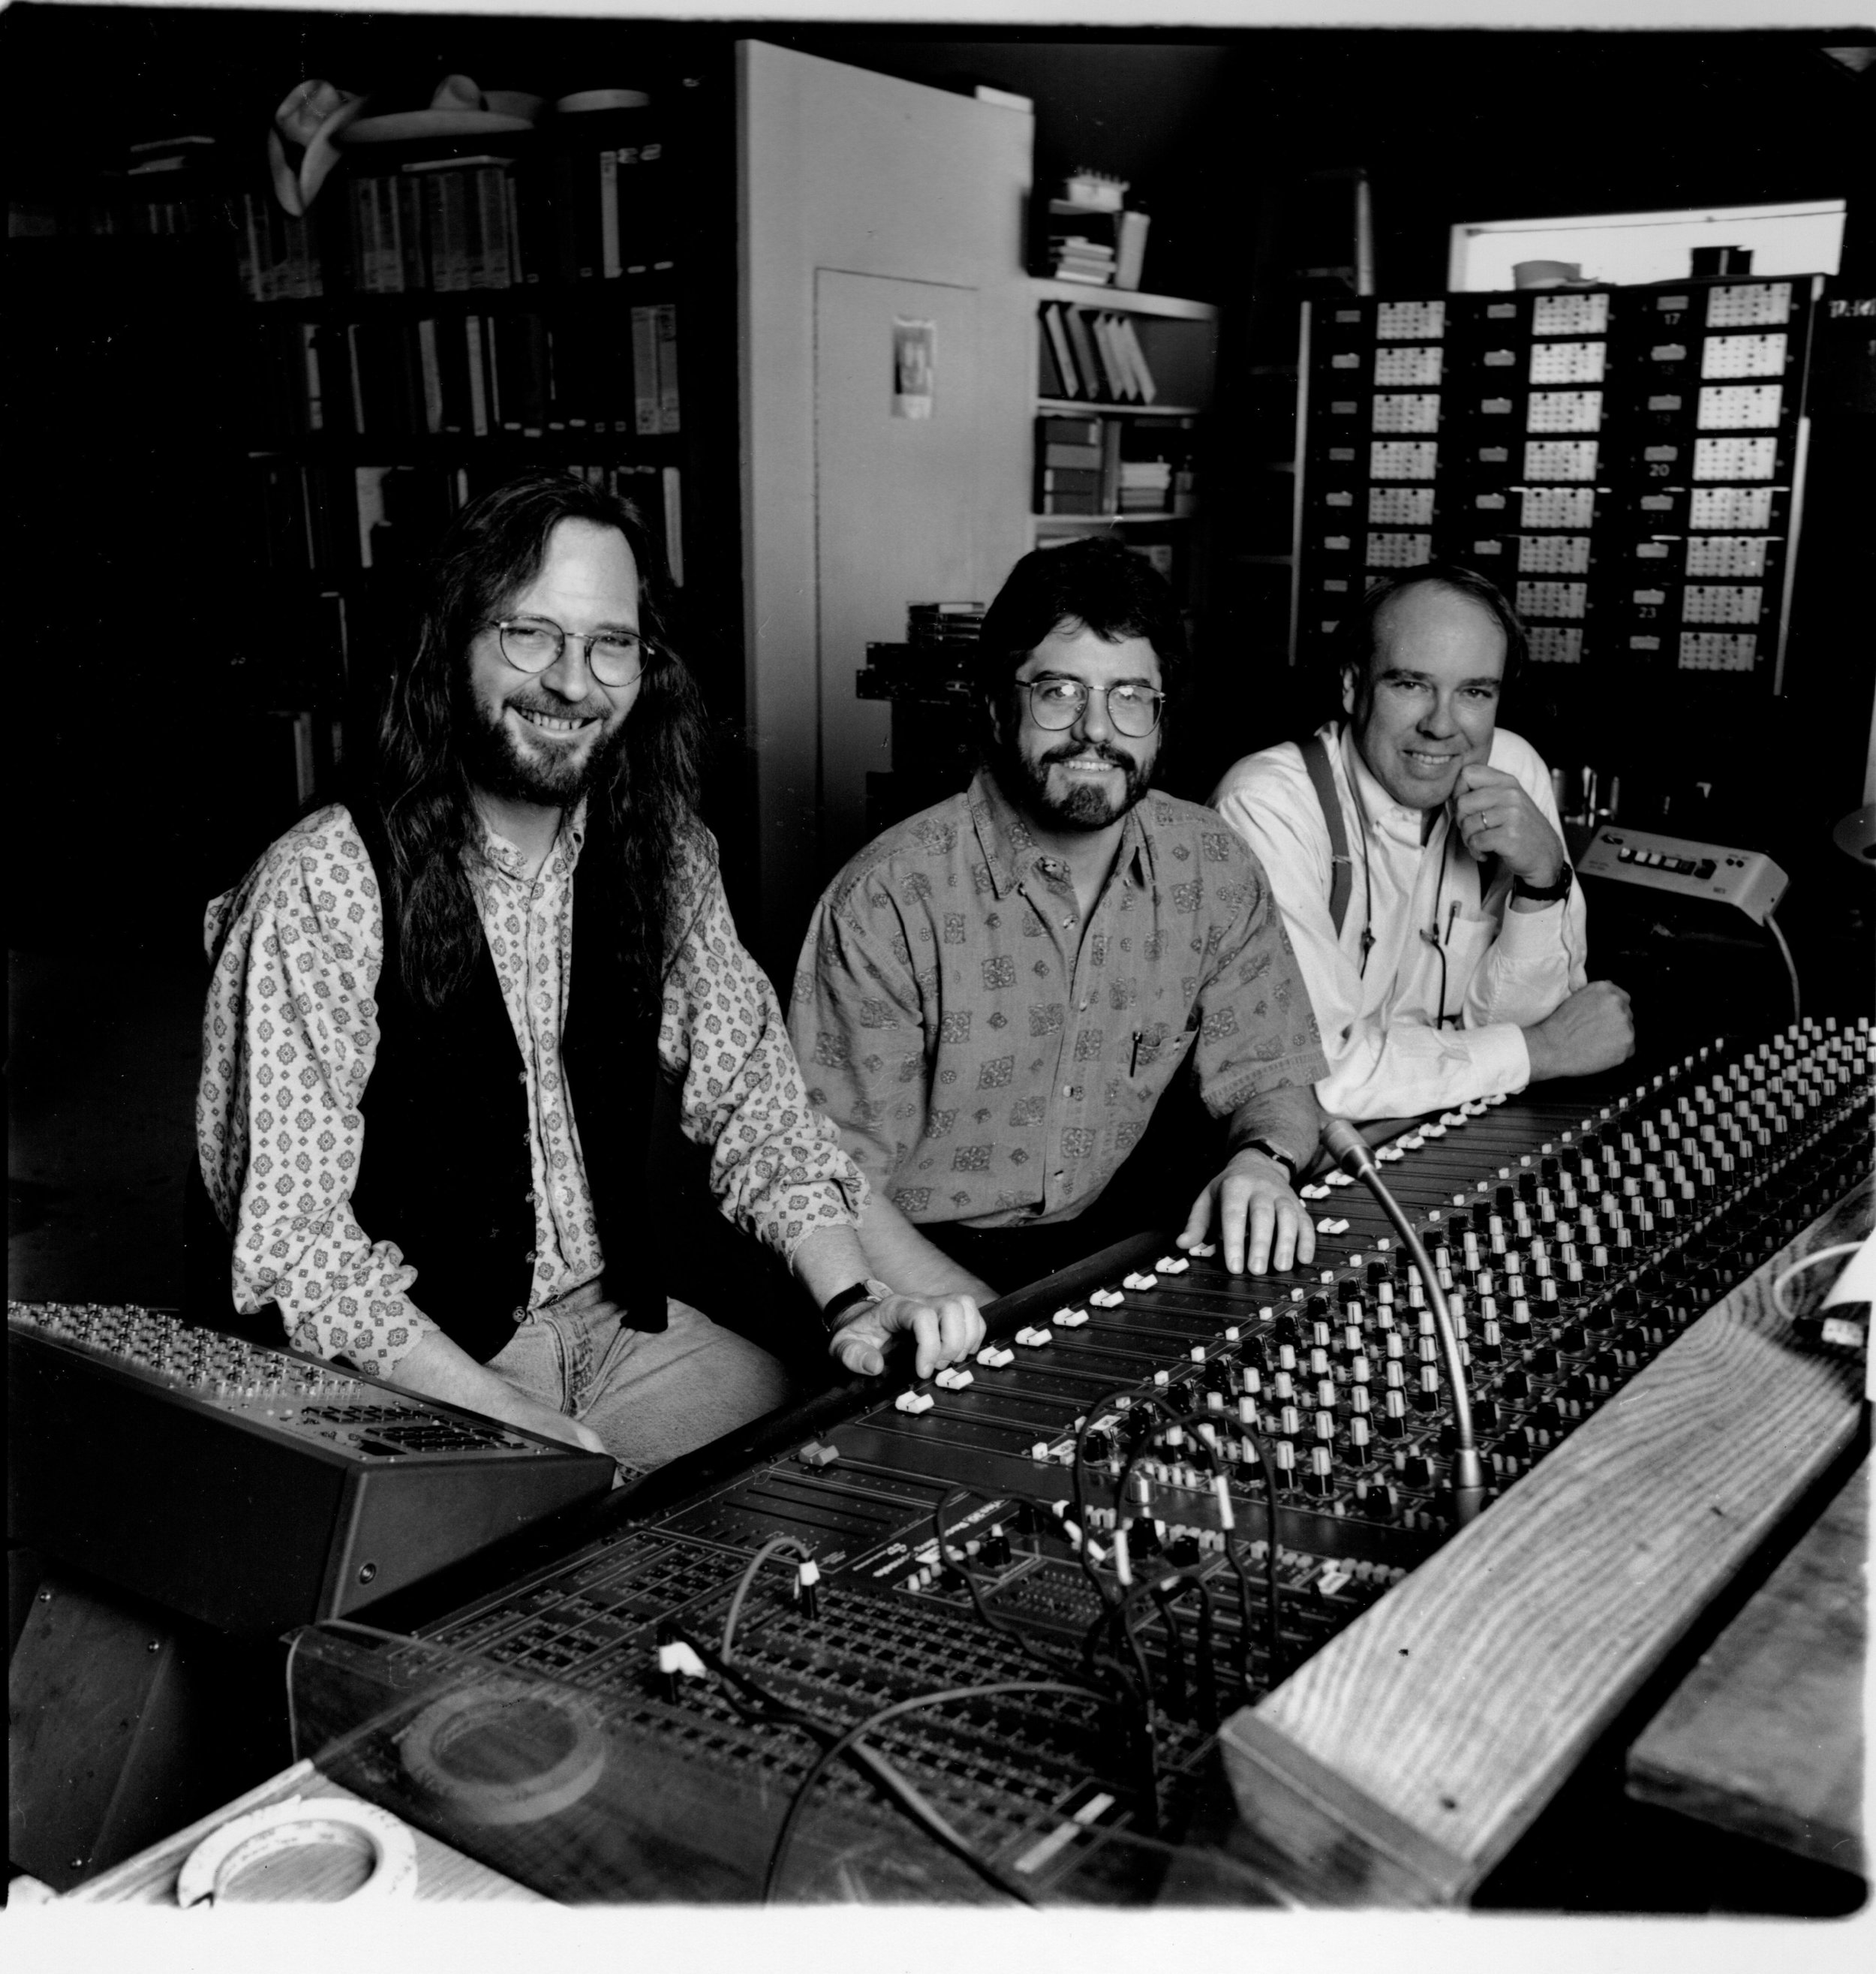 """America's Dulcimer Champion"", David Schnaufer with John Lomax III and co-producer Mark Miller. Mark now produces Garth Brooks."